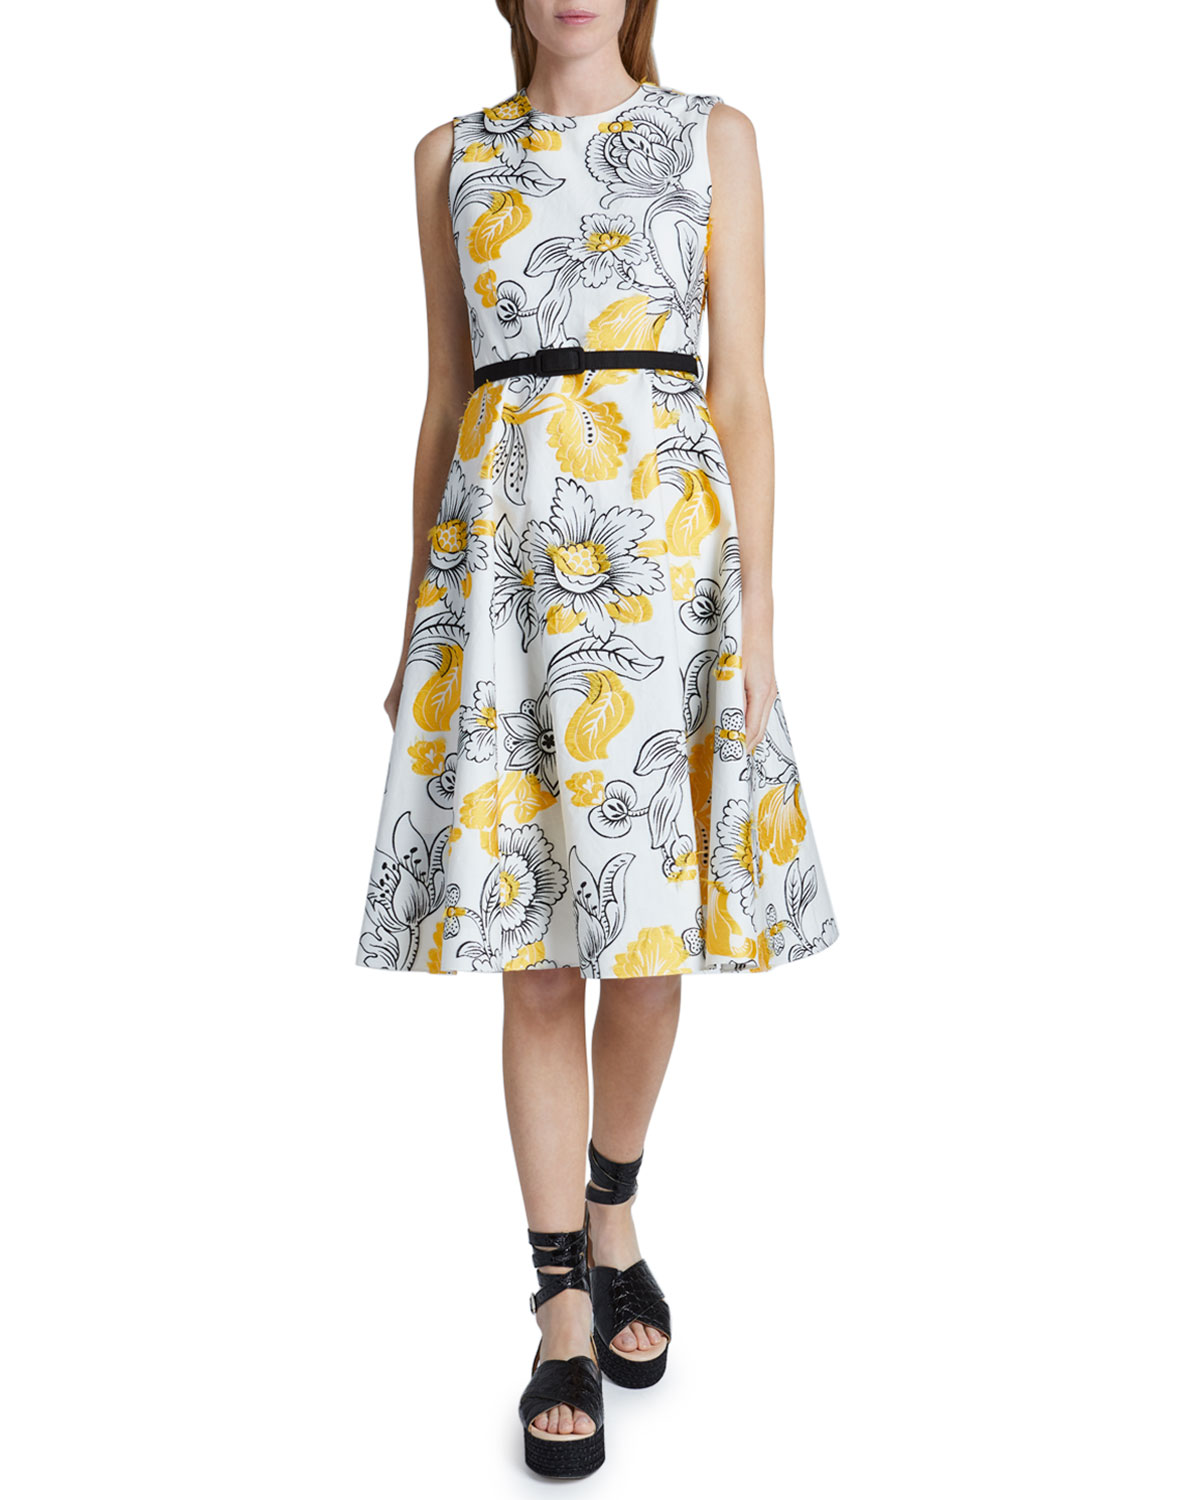 Erdem Fitted Bodice Dress